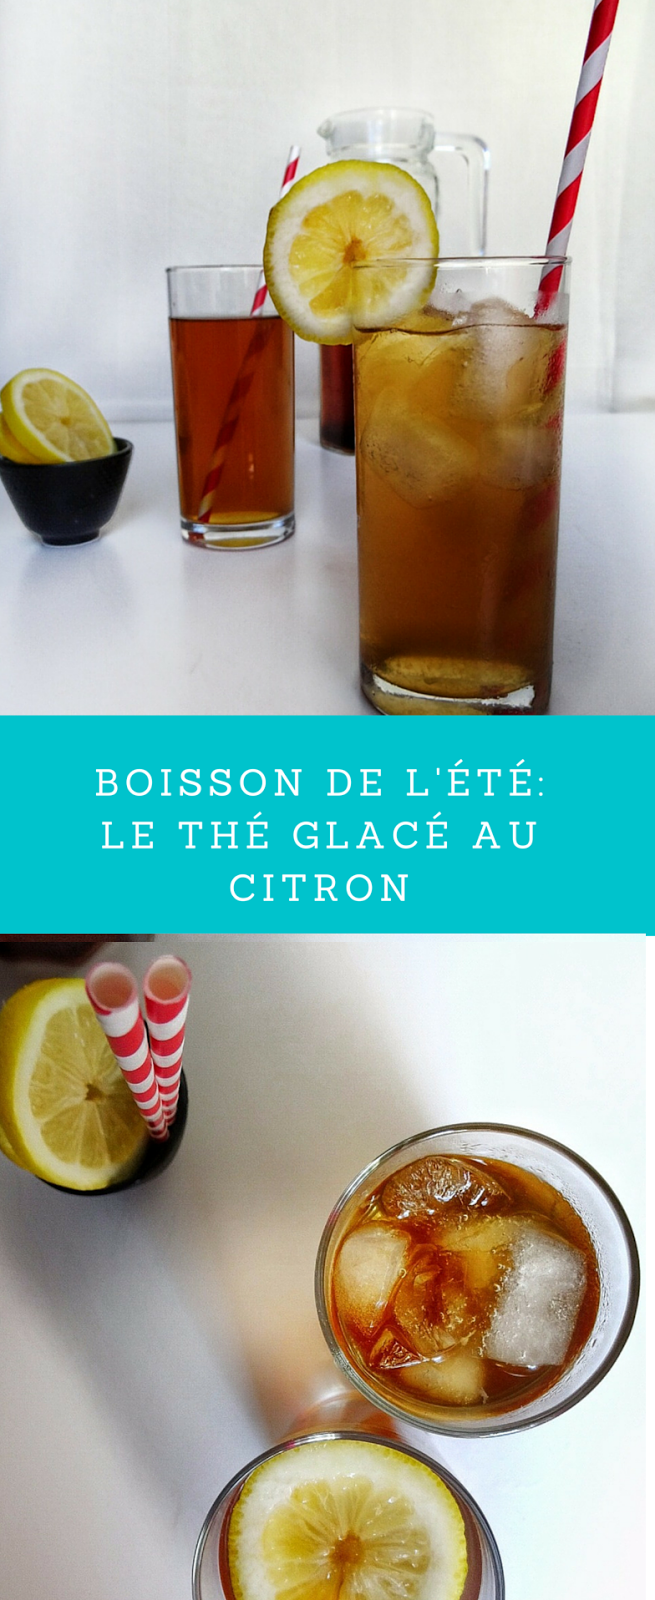 photo de thé glacé au citron